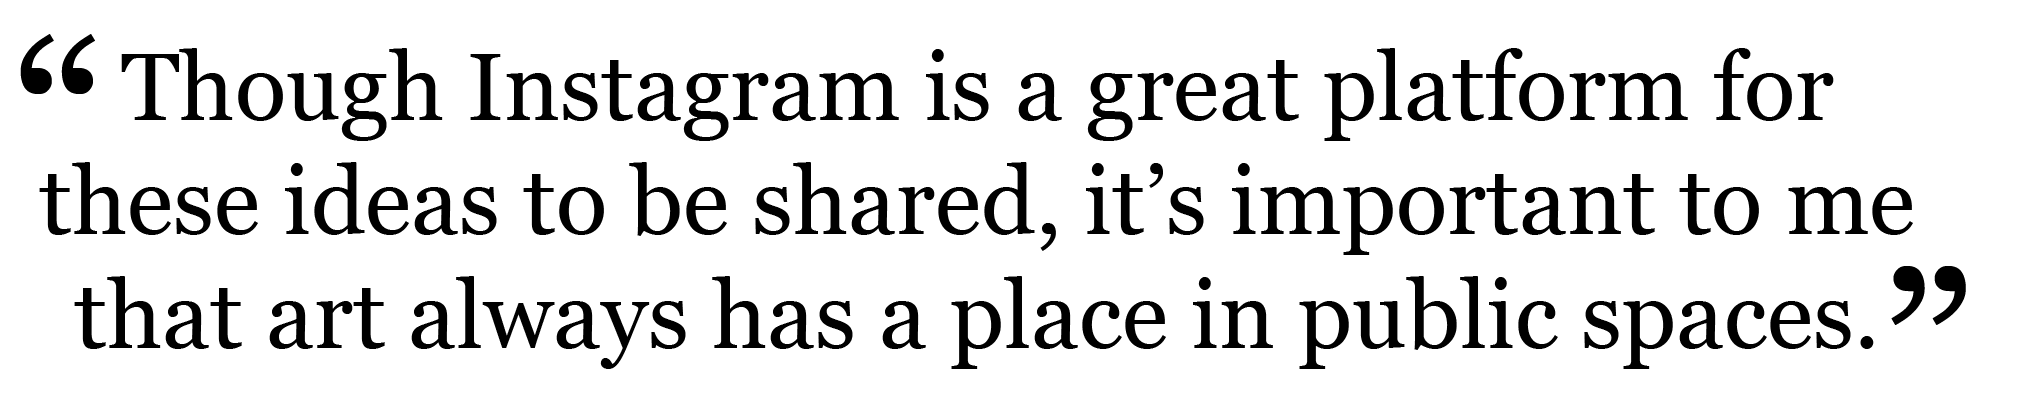 TARA-GOODTYPE-QUOTE-2.png